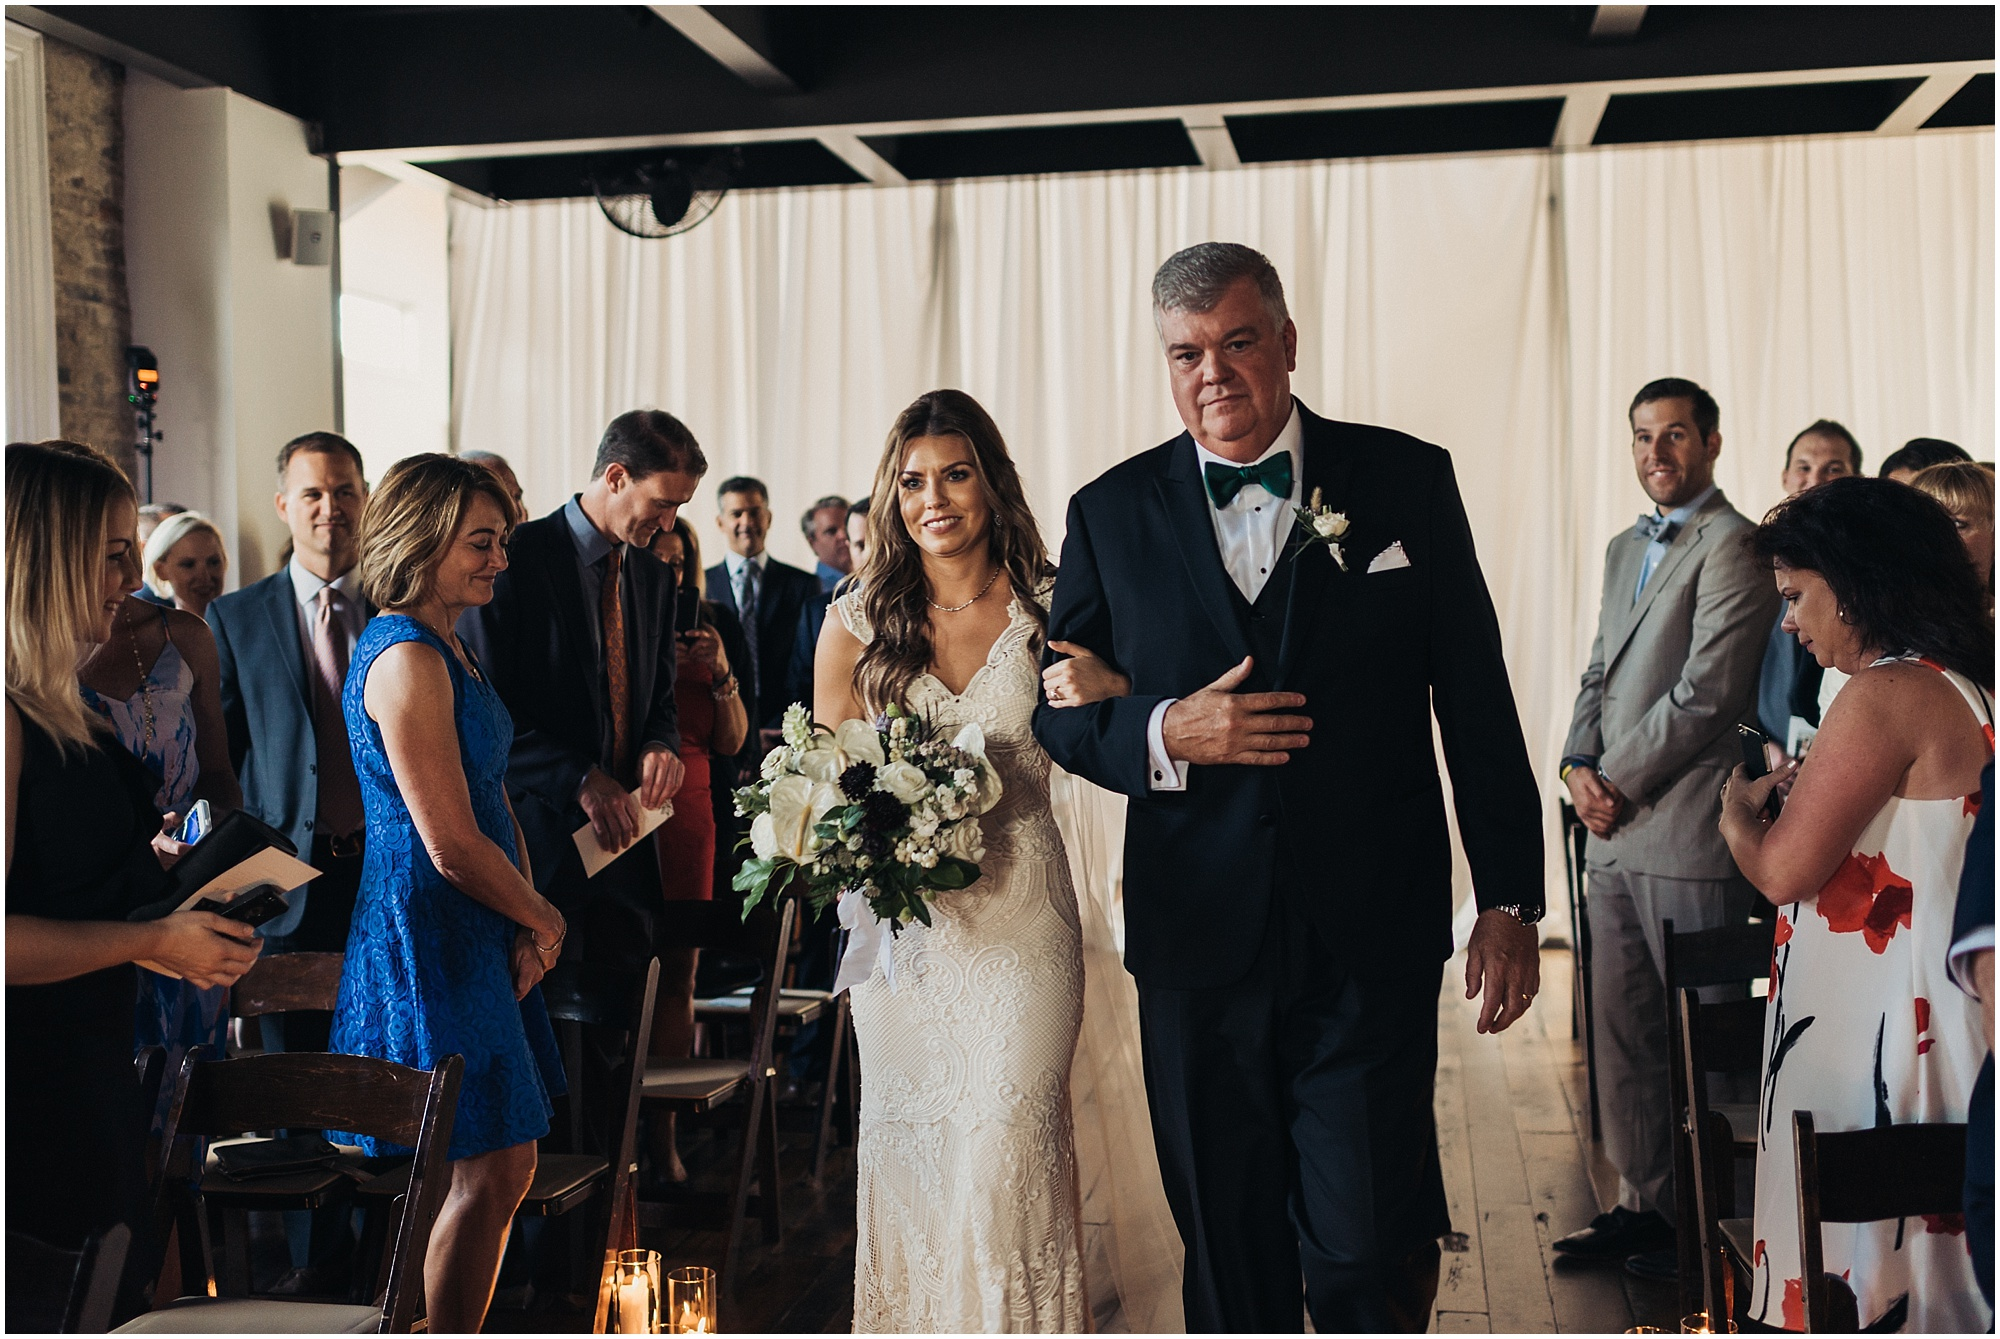 Walking down aisle at The Cordelle